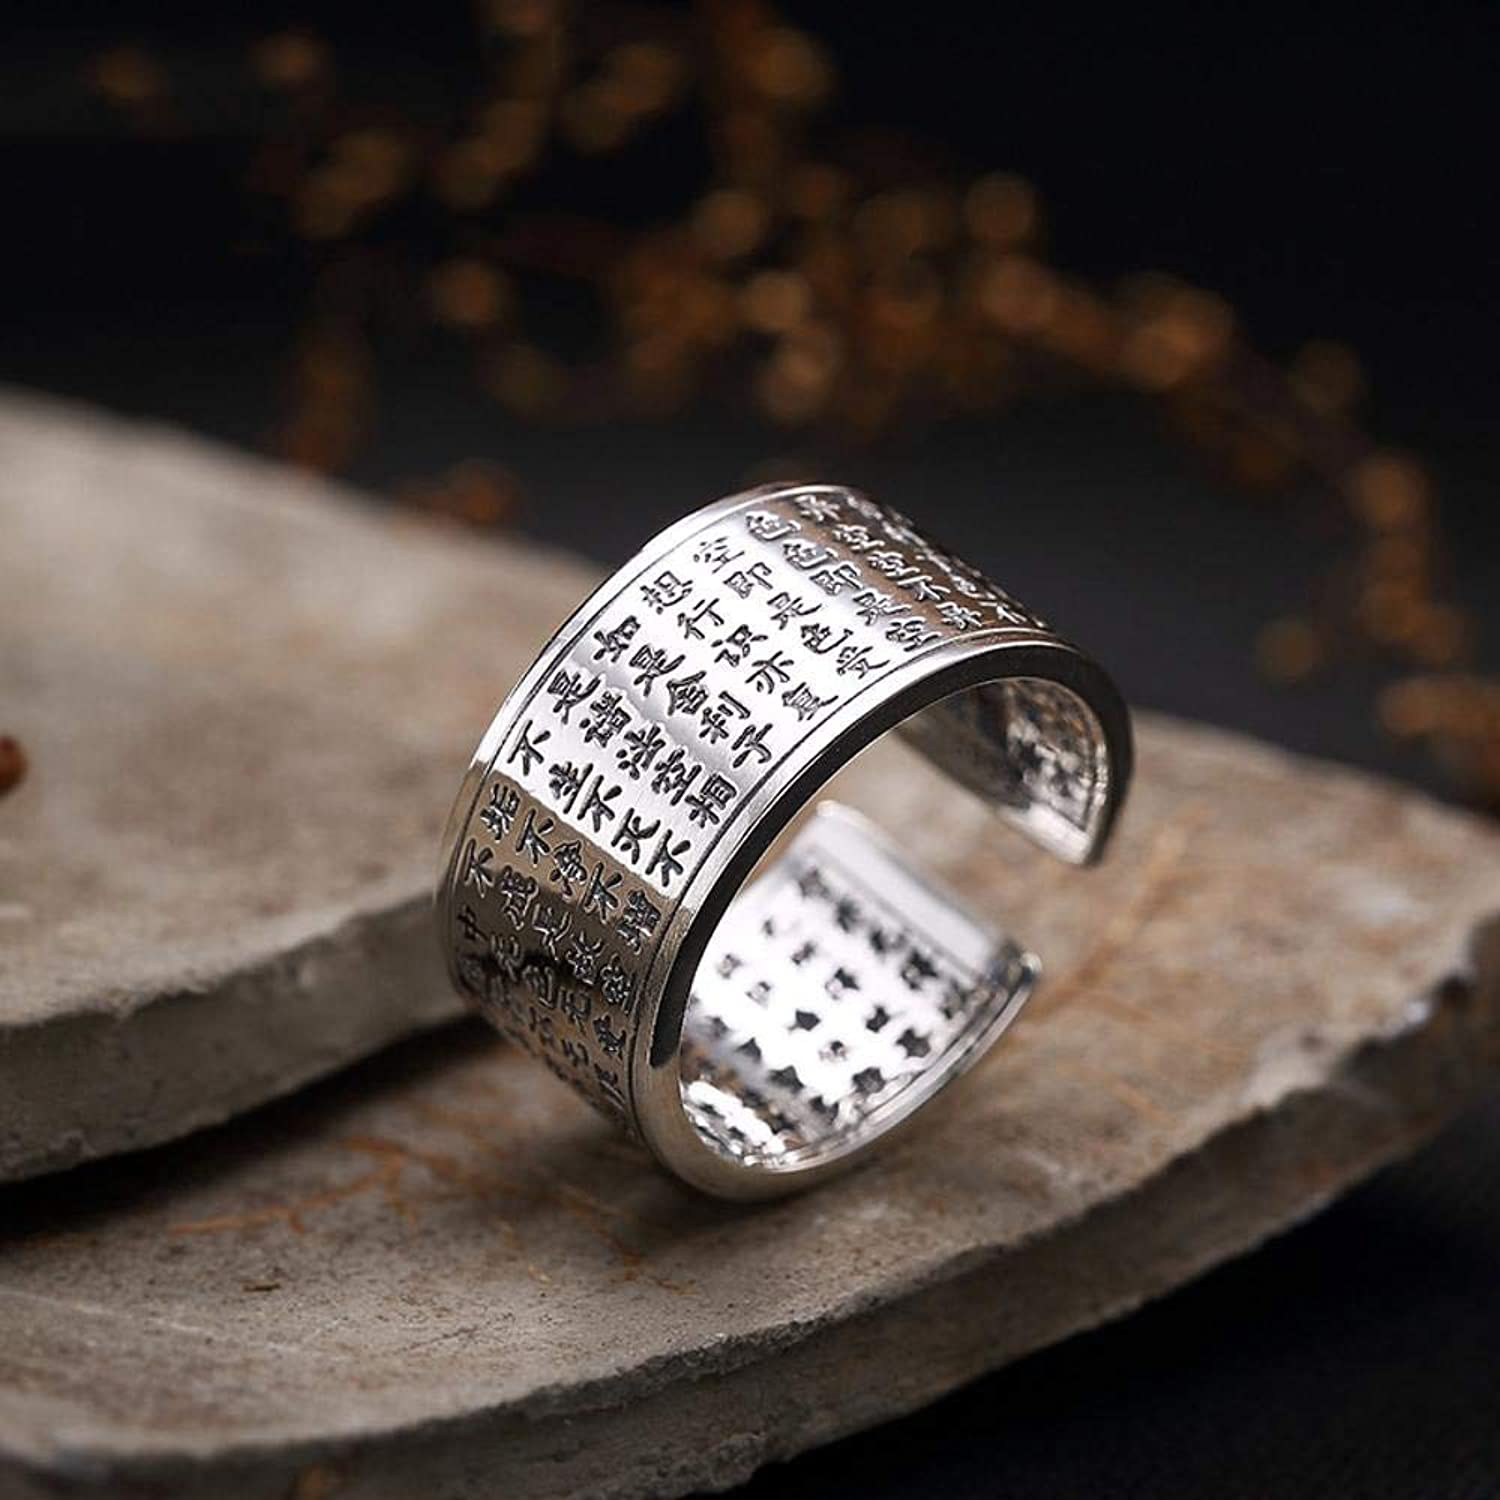 DTZH Rings Jewellery RingS999 Sterling Silver Buddhism Wisdom Paramita Male and Female Couples Ring Give it to Dear People